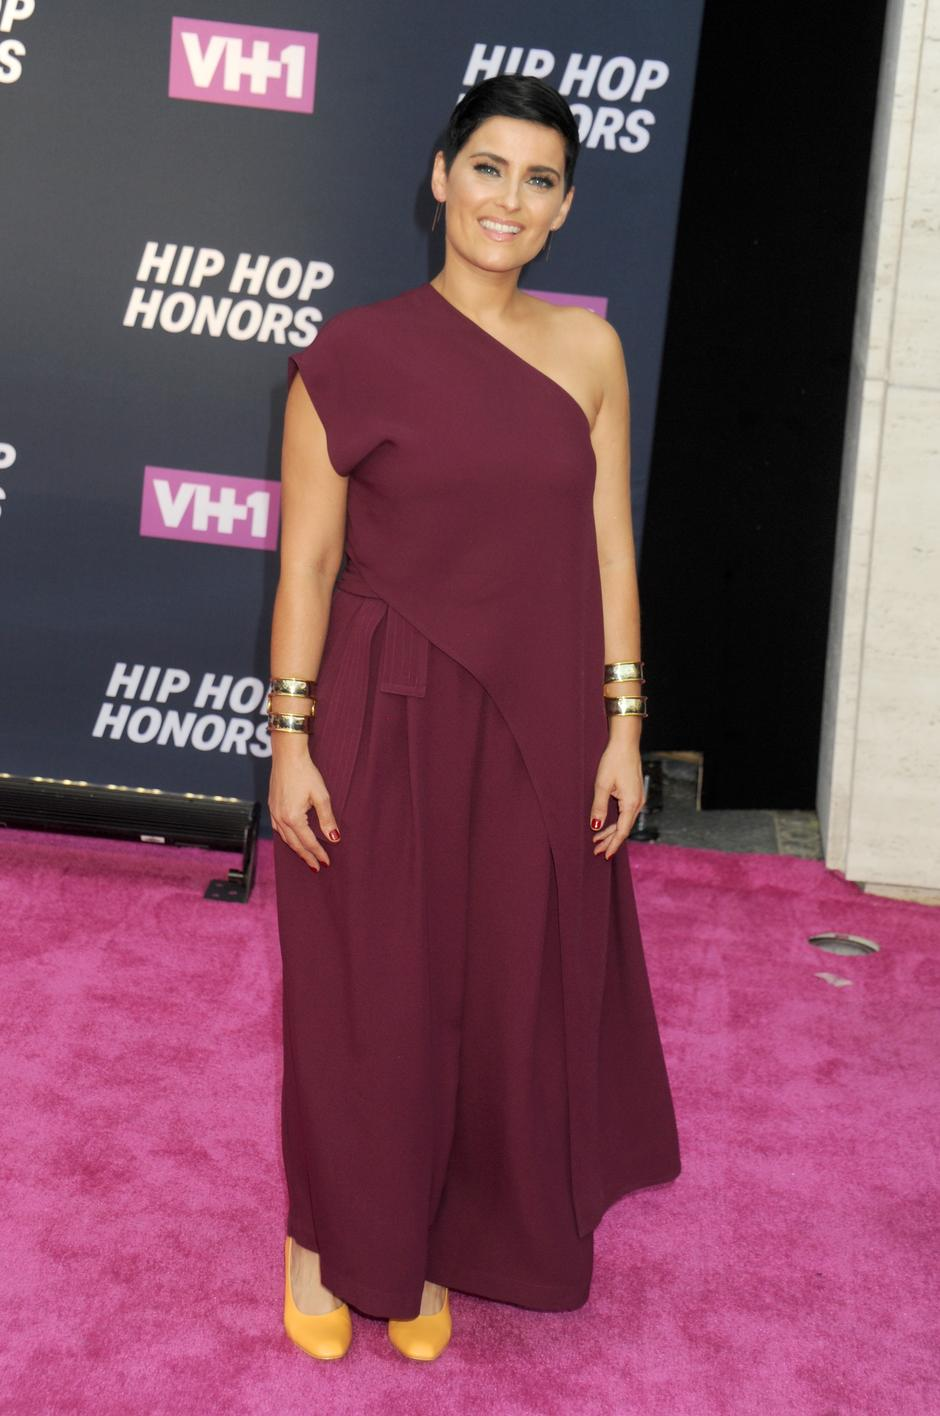 VH1 Hip Hop Honors: All Hail The Queens - NYC | Autor: Van Tine Dennis/Press Association/PIXSELL